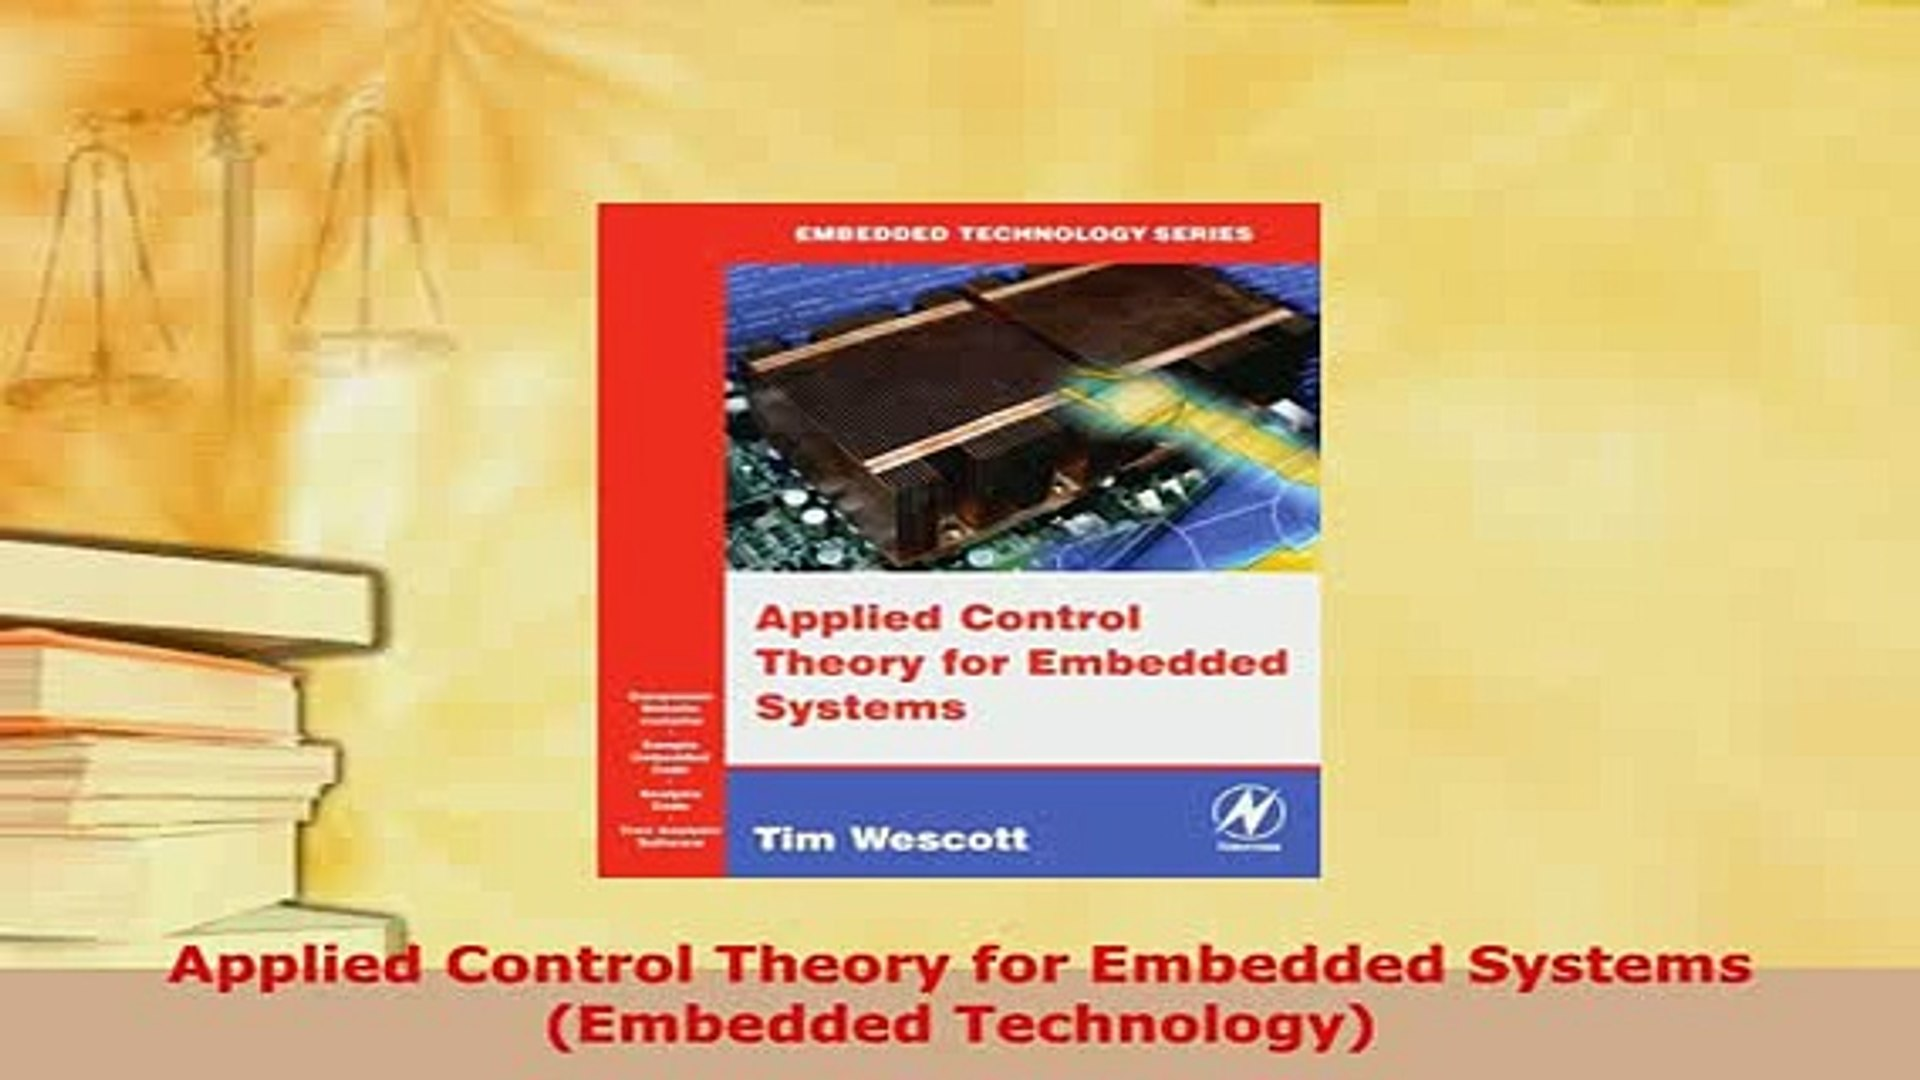 Applied Control Theory for Embedded Systems